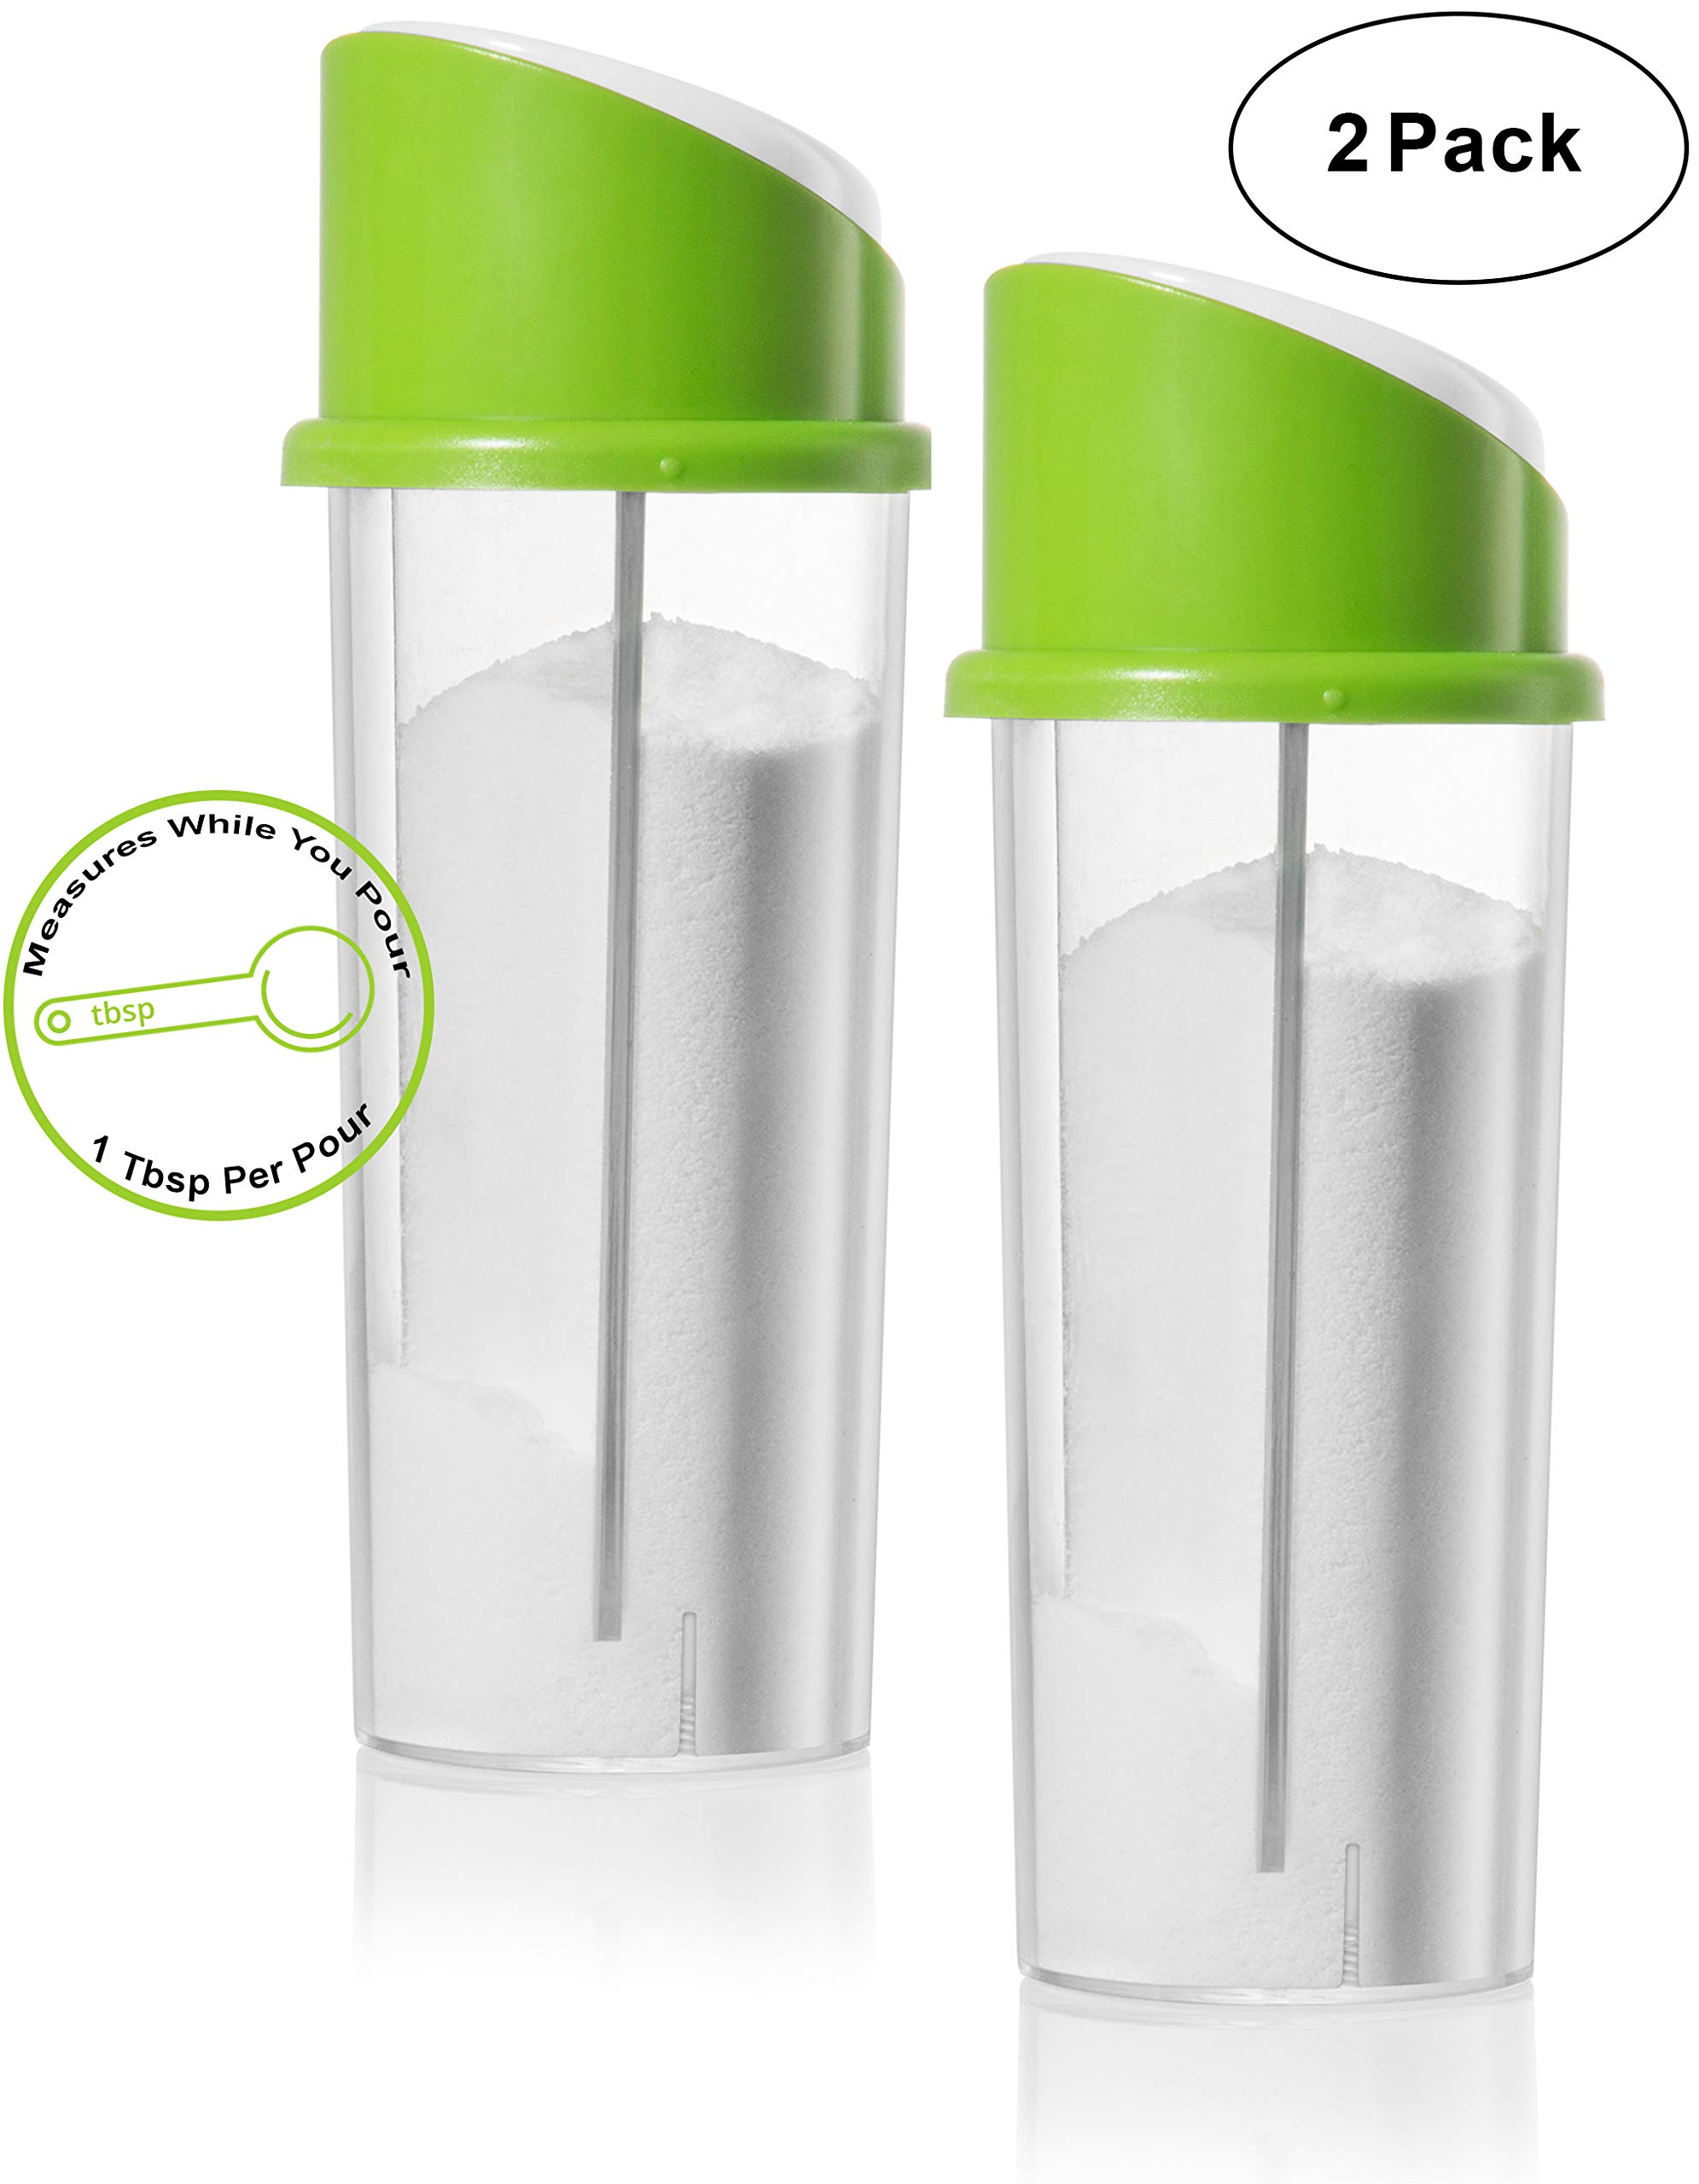 Auto Measure 2 Pack Sugar Dispenser Pourer Shaker With Controlled 1 Tablespoon Portion Control Lid Clear Glass Canister With Automatic Measure Top Modern Green Spout Perfect Gift By Perlli